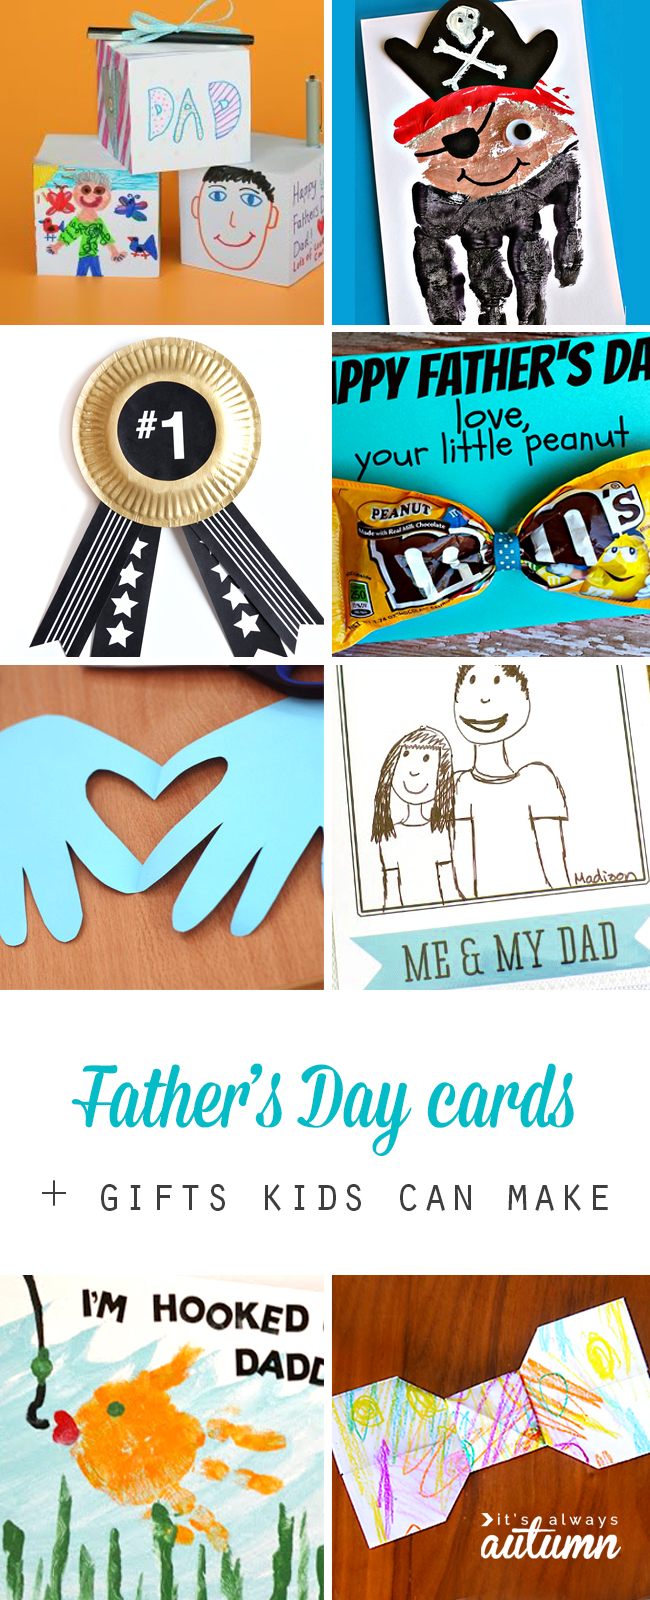 20 Father's Day cards and gifts that kids can make. Fun, easy, and cheap gifts and cards kids can make for Dad